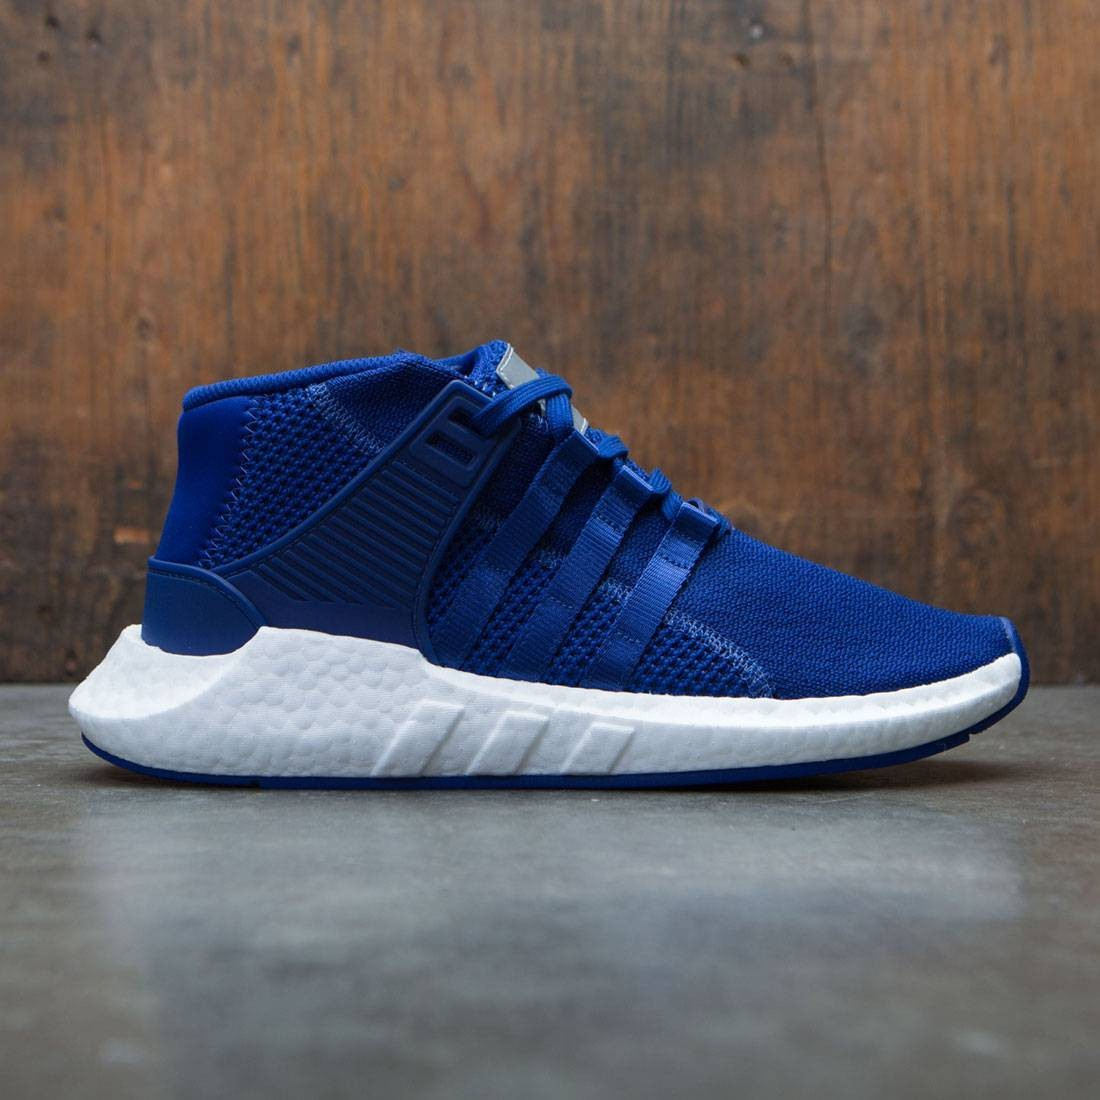 6bd6c5b228a2 adidas x mastermind world men eqt support 9317 mid blue mystery ink  footwear white